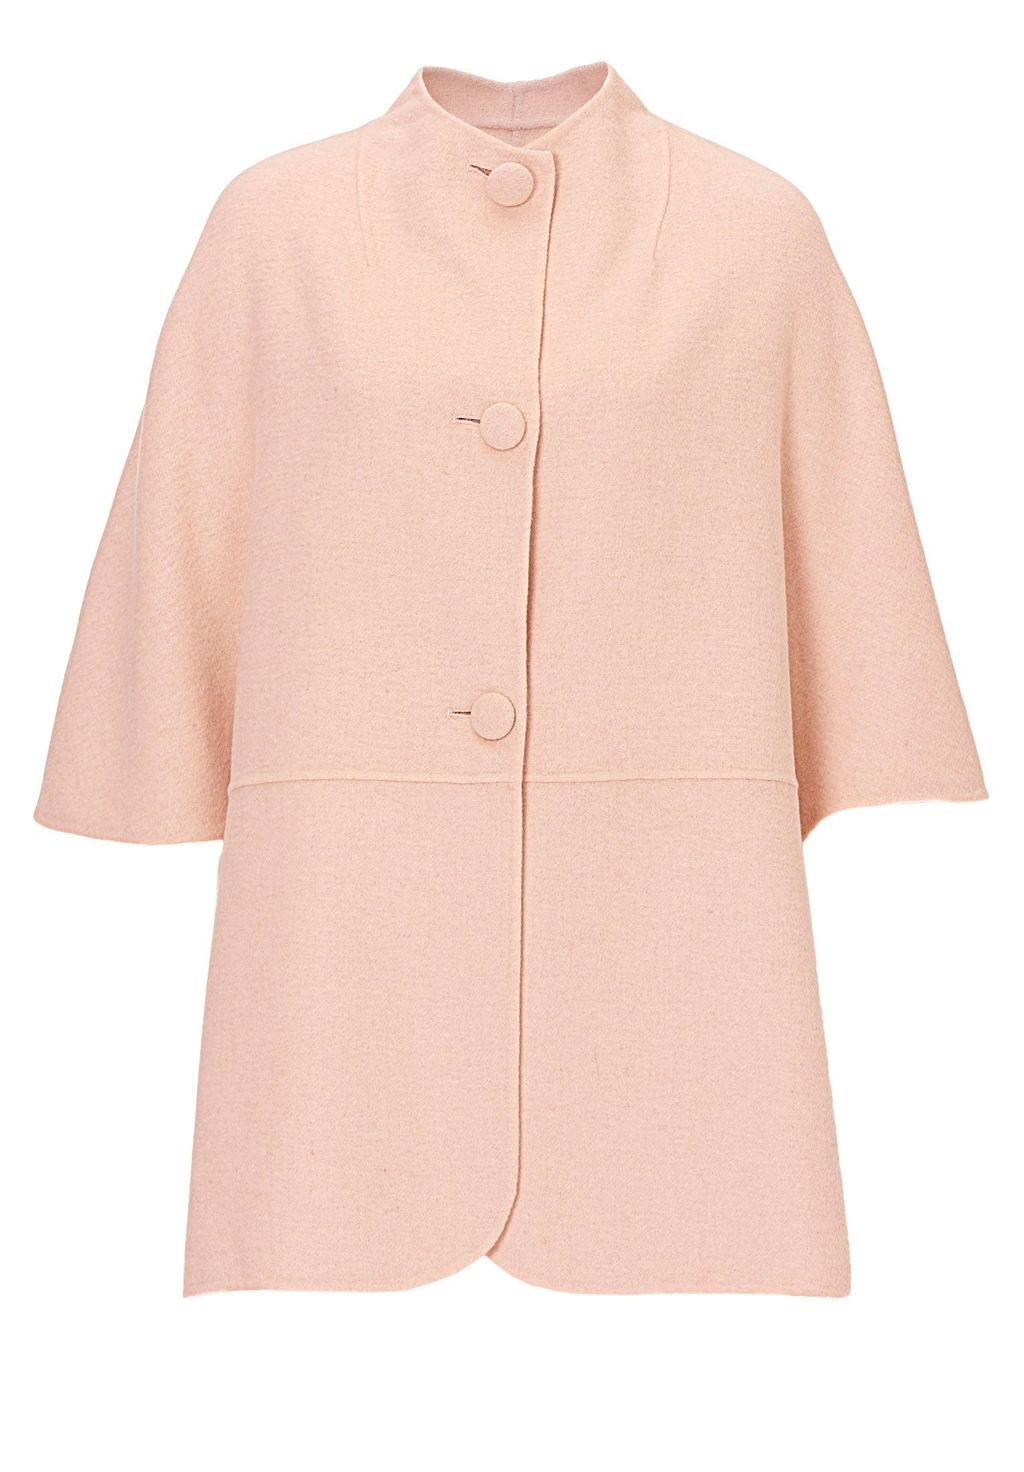 Unlined Wool Cape, Pink - pattern: plain; length: below the bottom; style: single breasted; collar: high neck; predominant colour: pink; occasions: casual, work, creative work; fit: straight cut (boxy); fibres: wool - 100%; sleeve length: 3/4 length; sleeve style: standard; collar break: high; pattern type: fabric; texture group: woven bulky/heavy; season: s/s 2016; wardrobe: highlight